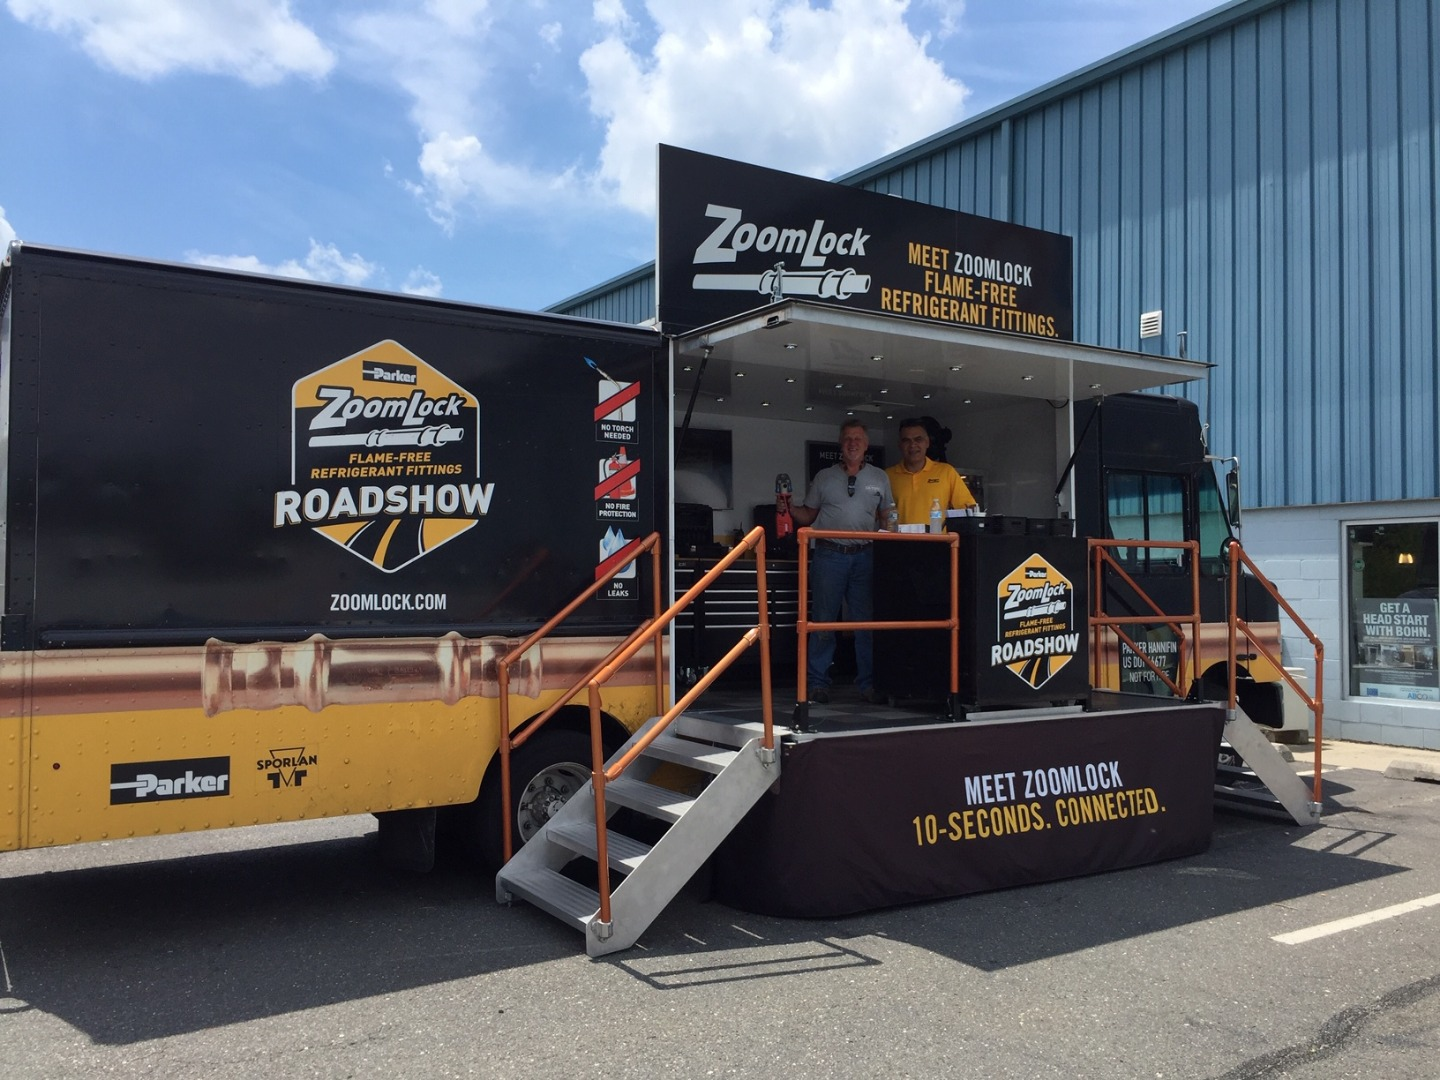 The ZoomLock Roadshow Must Go On